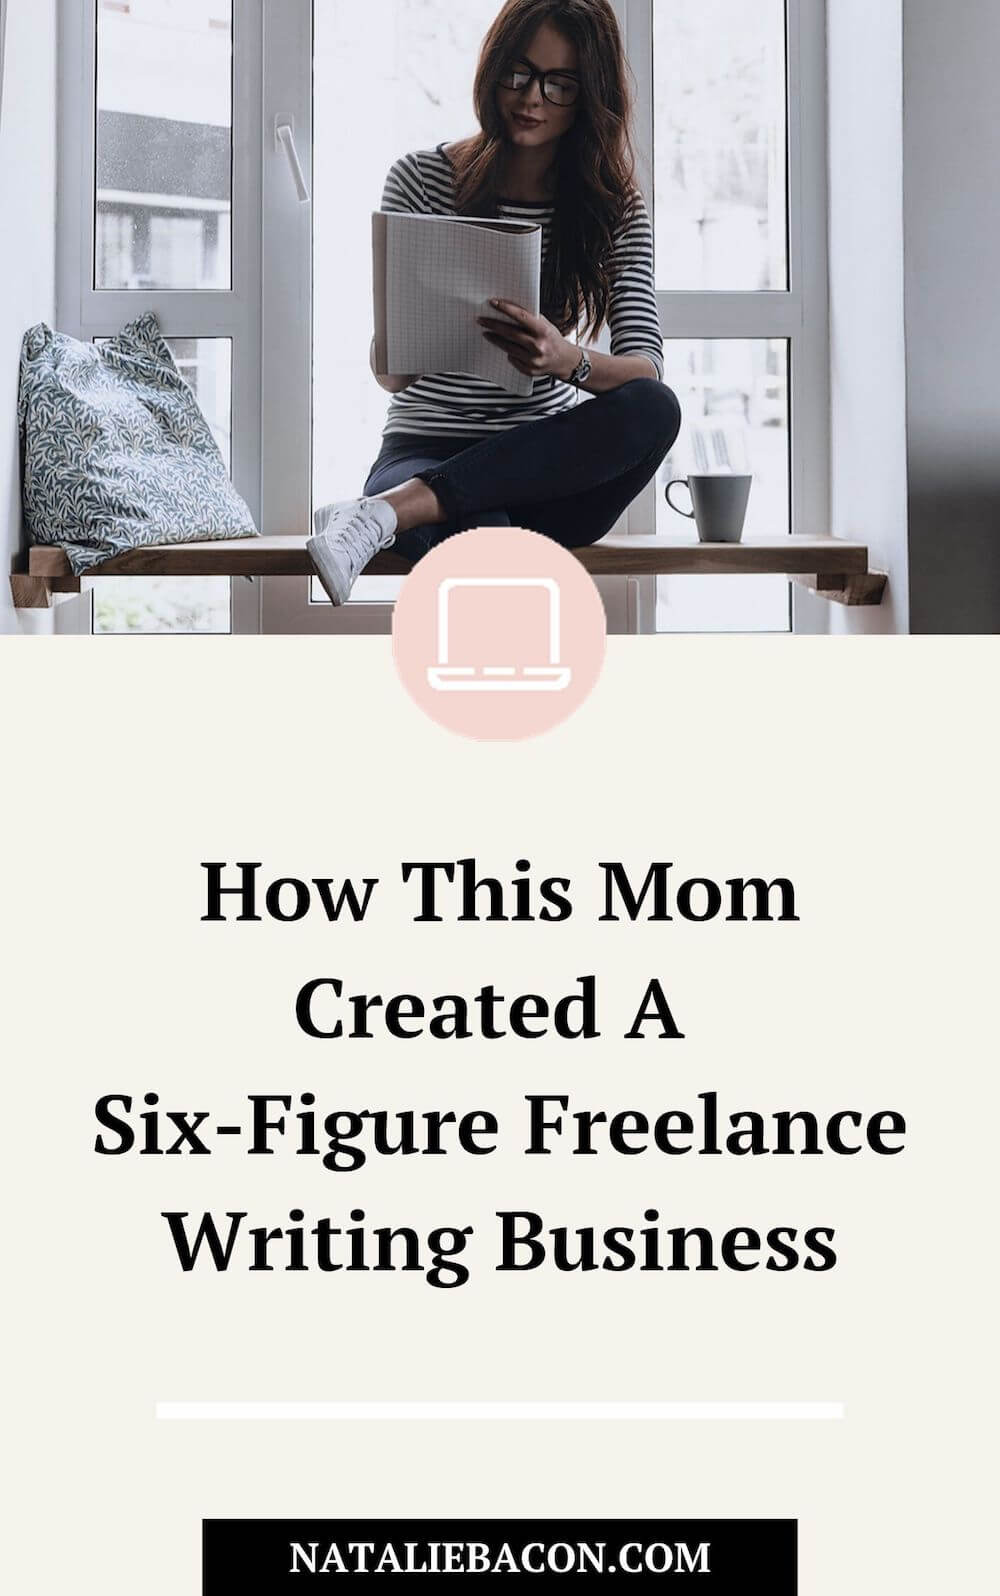 How This Mom Created A Six-Figure Freelance Writing Business